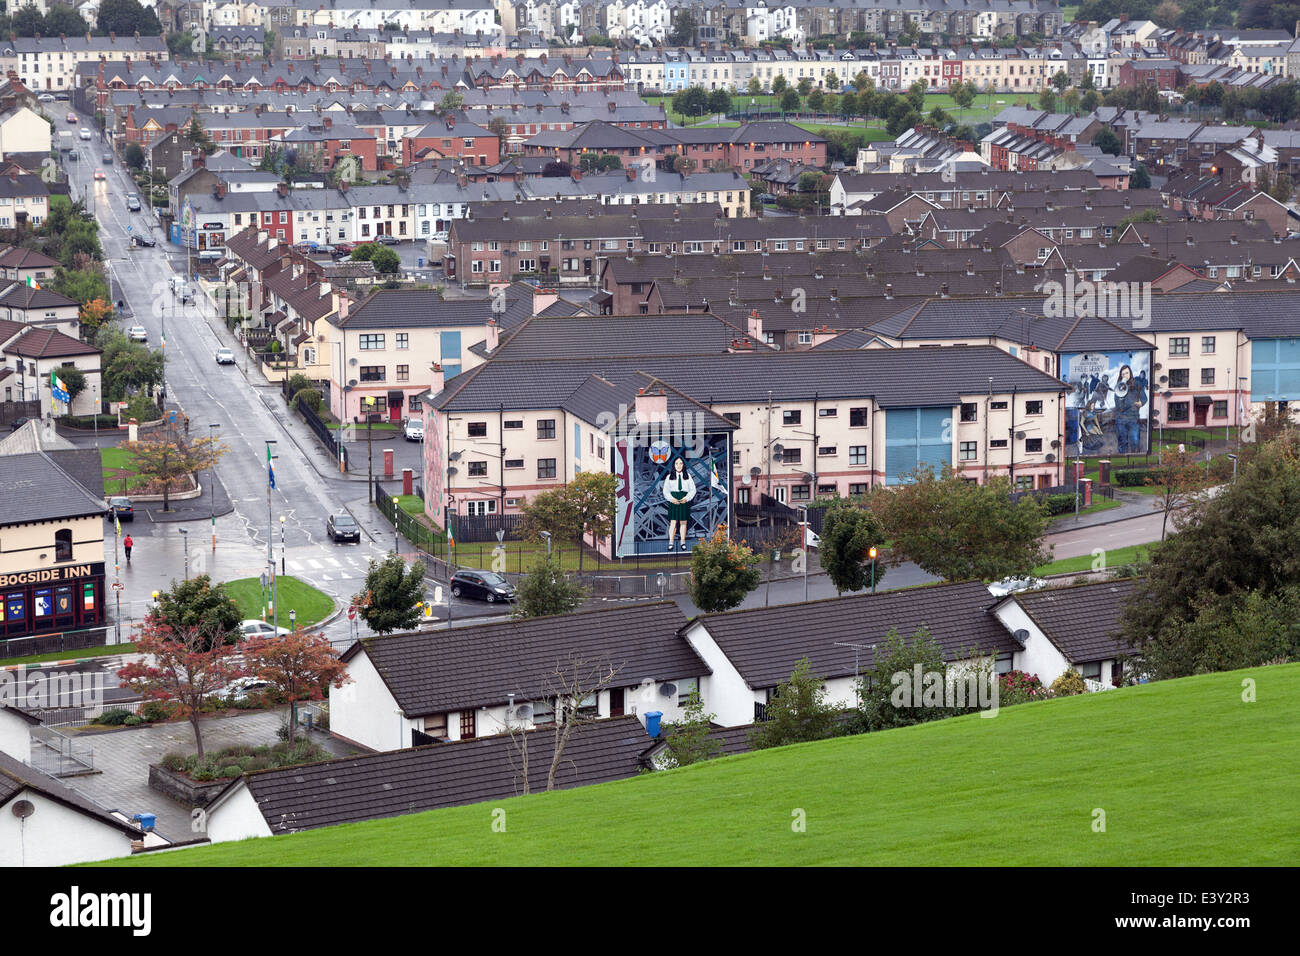 The Bogside neighborhood in Derry, Northern Ireland - Stock Image